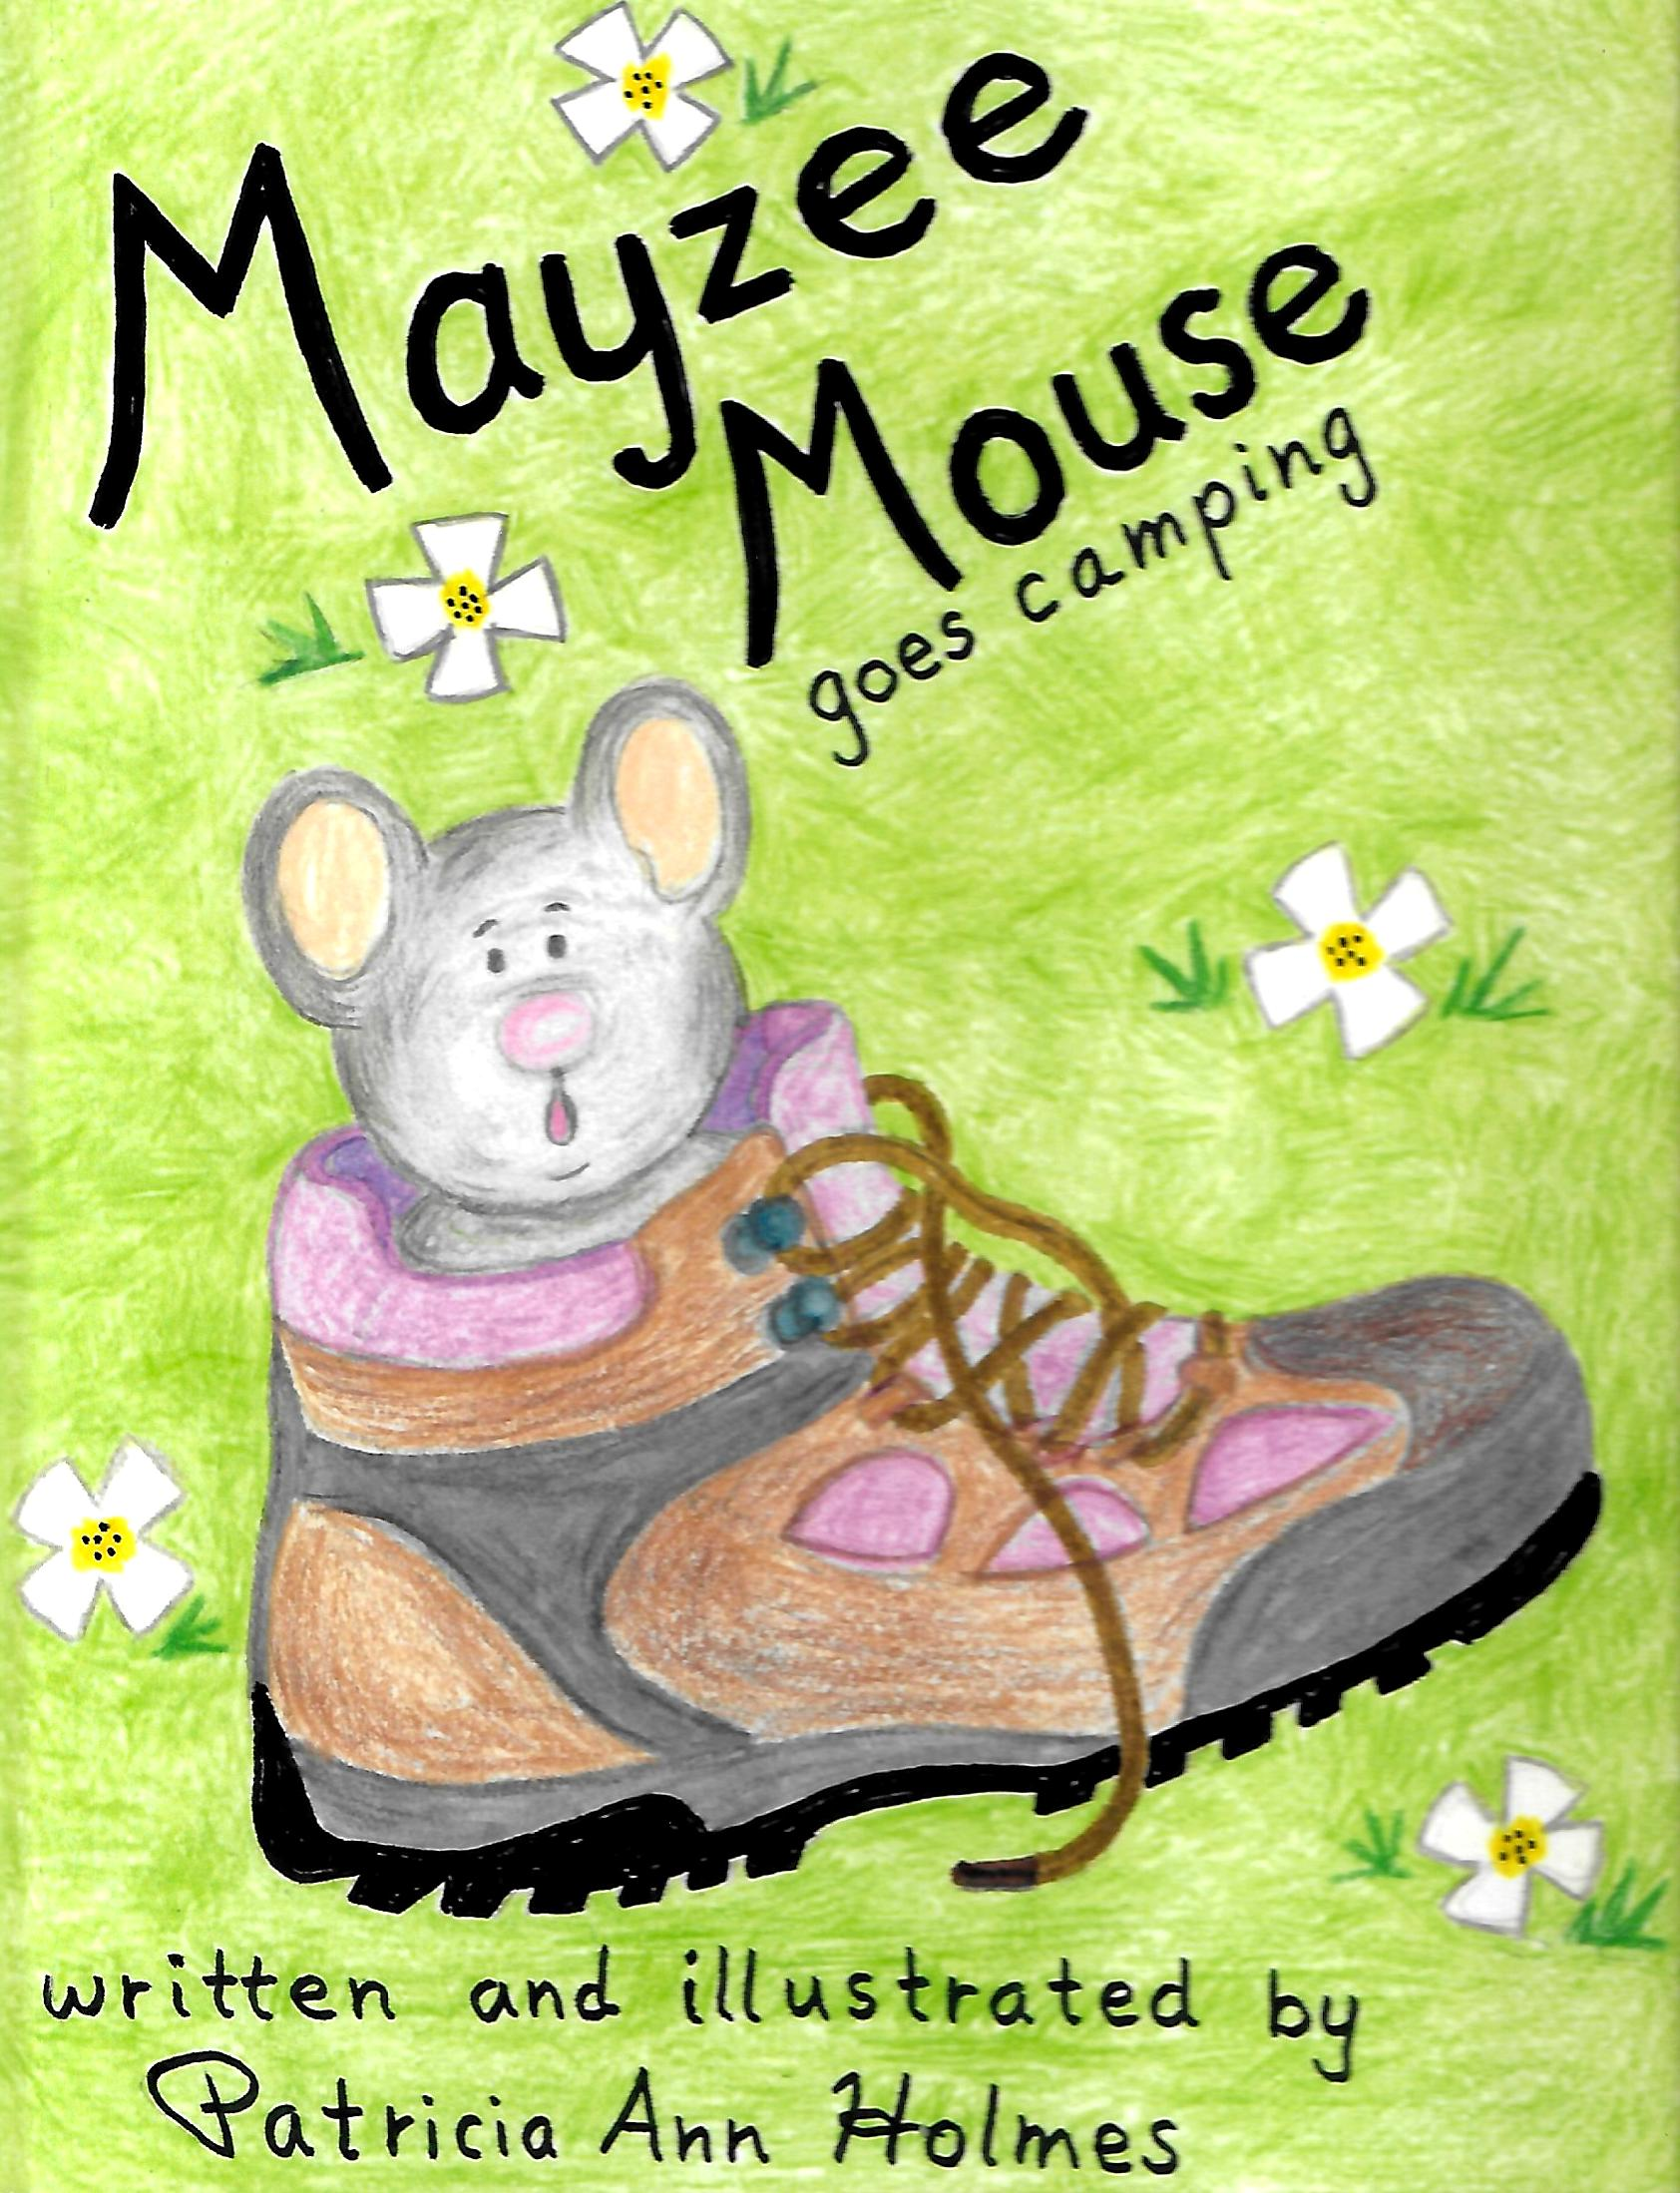 Mayzee Mouse Goes Camping